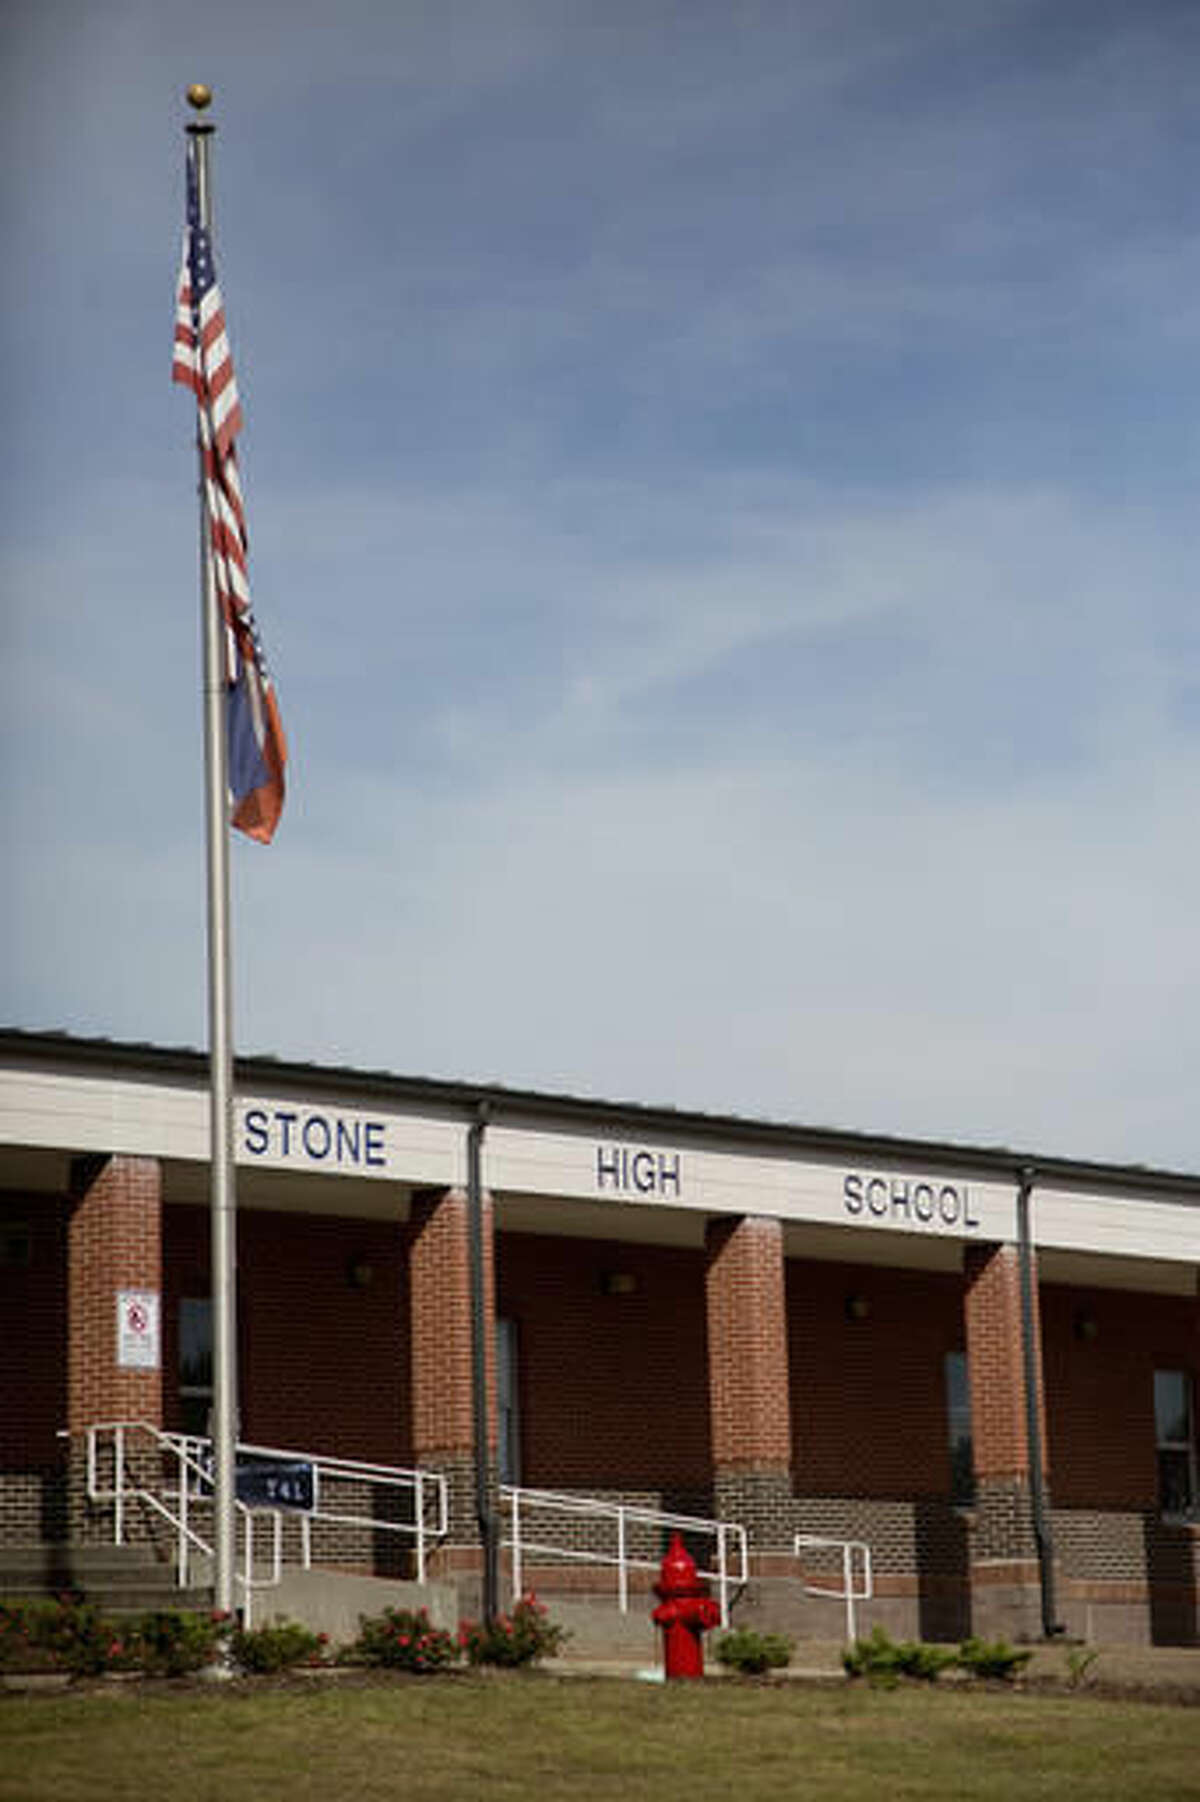 Stone County High School in Wiggins, Miss., is seen Monday, Oct. 24, 2016. The state NAACP says white students at Stone County High School threw a noose around the neck of a black student and